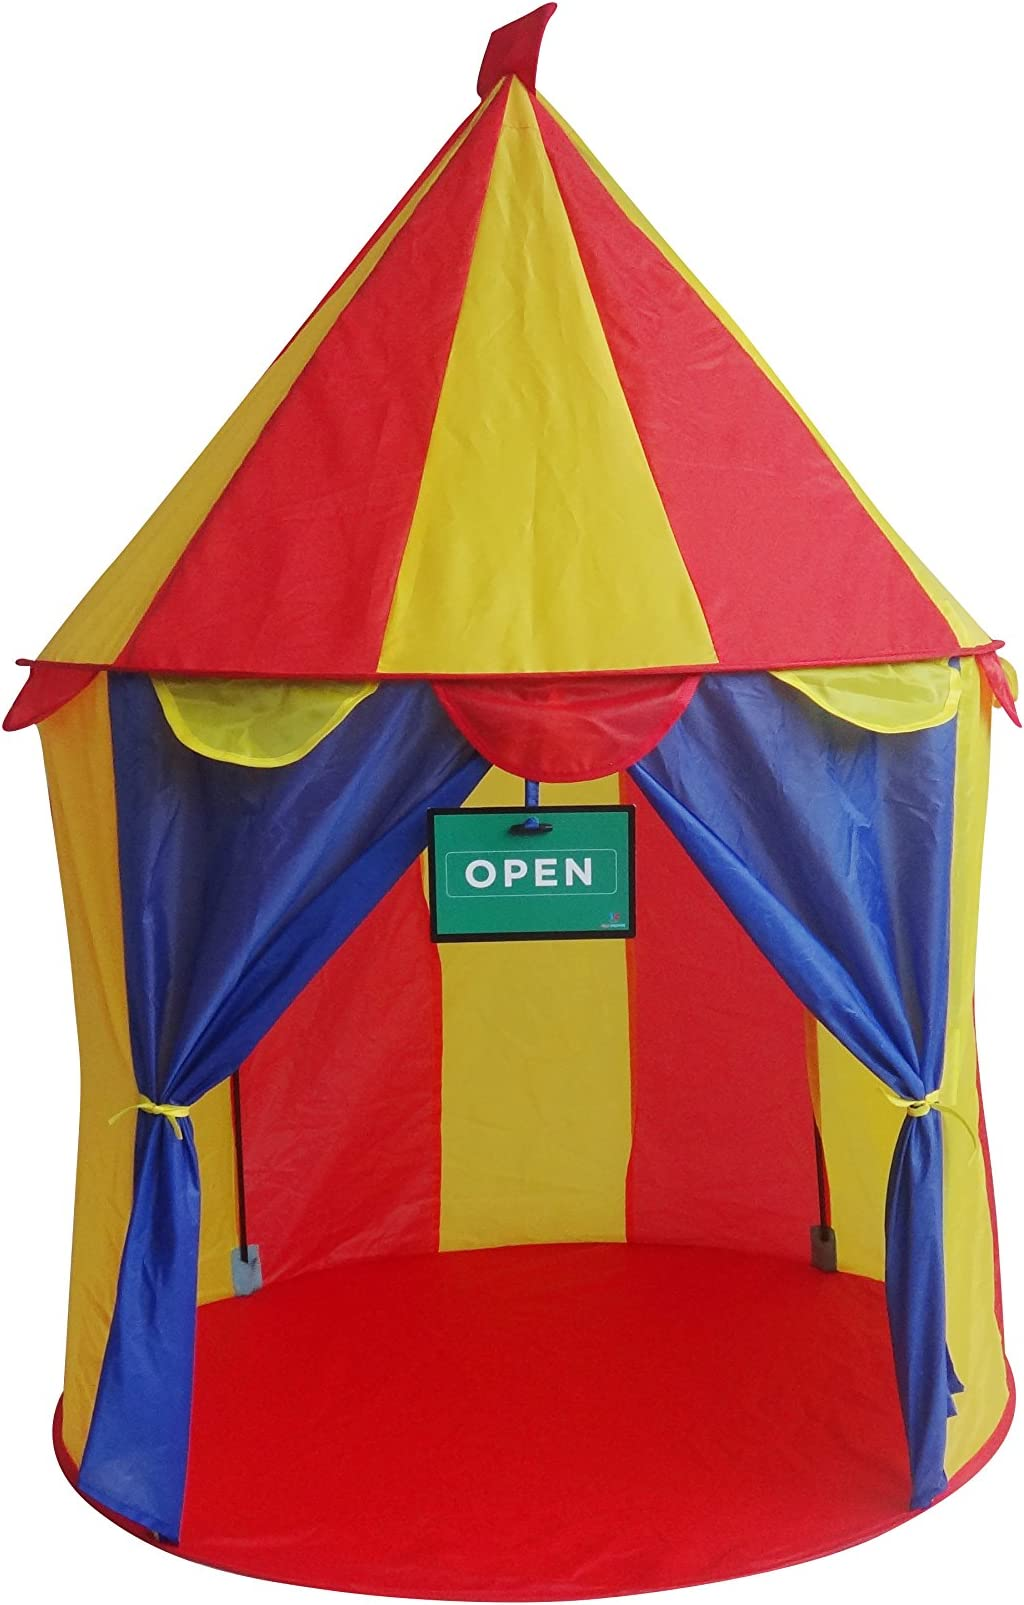 Play Kreative Circus POP UP Tent - Bright Colorful Carnival Booth Play Tent for indoors/  sc 1 st  Amazon.com & Amazon.com: Play Tents u0026 Tunnels: Toys u0026 Games: Play Tents Play ...